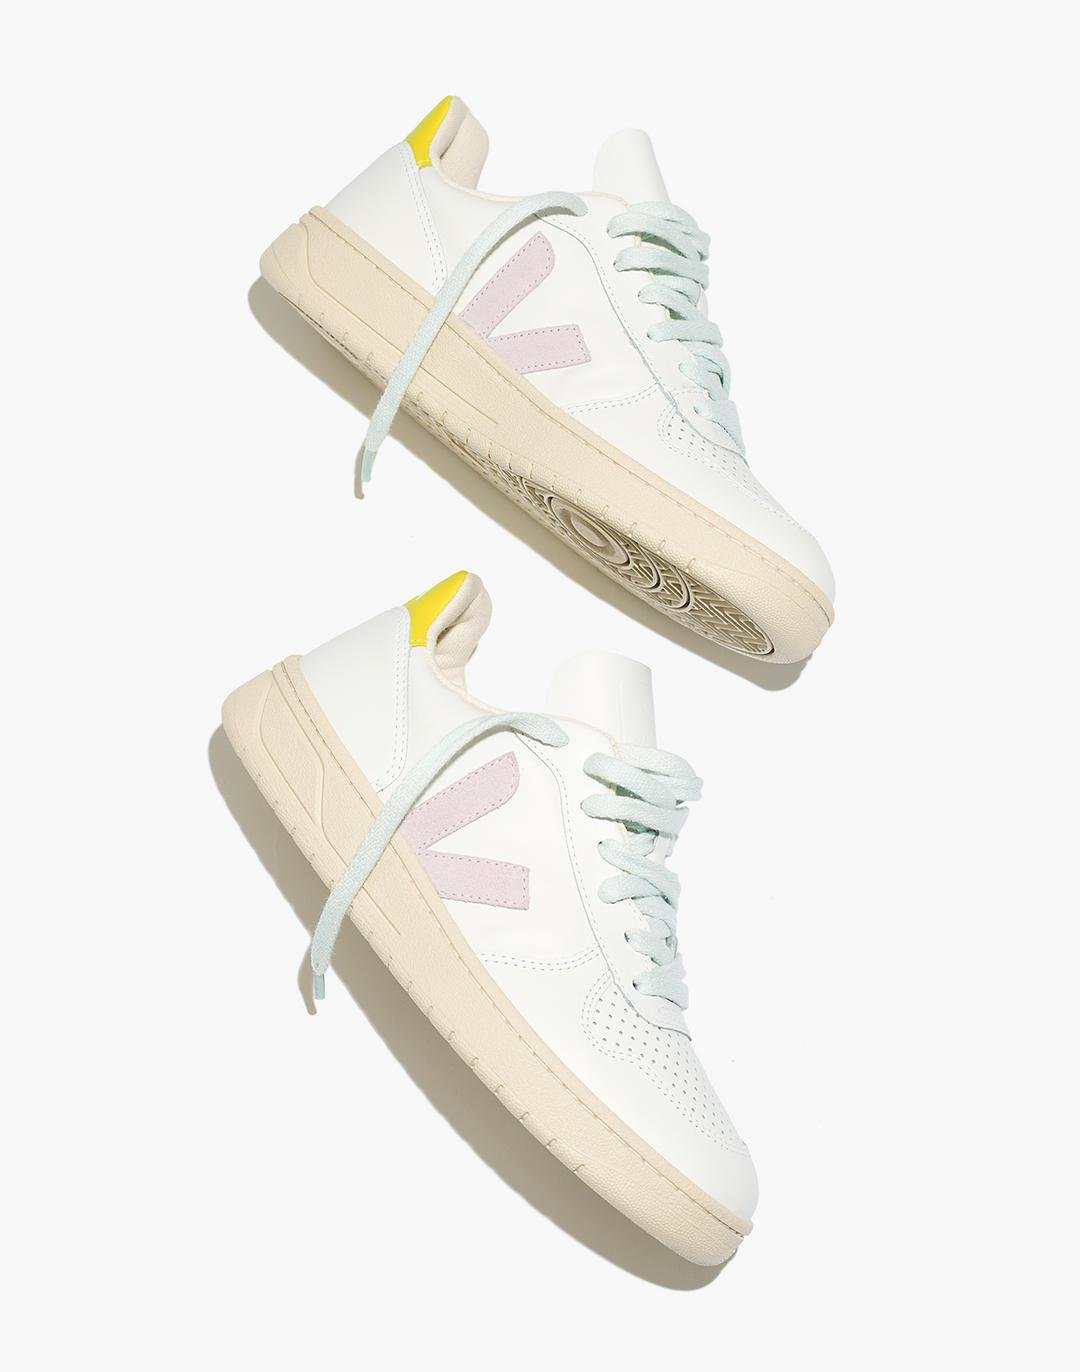 Madewell x Veja™ Leather and Suede V-10 Sneakers in Pastel Neon Colorblock